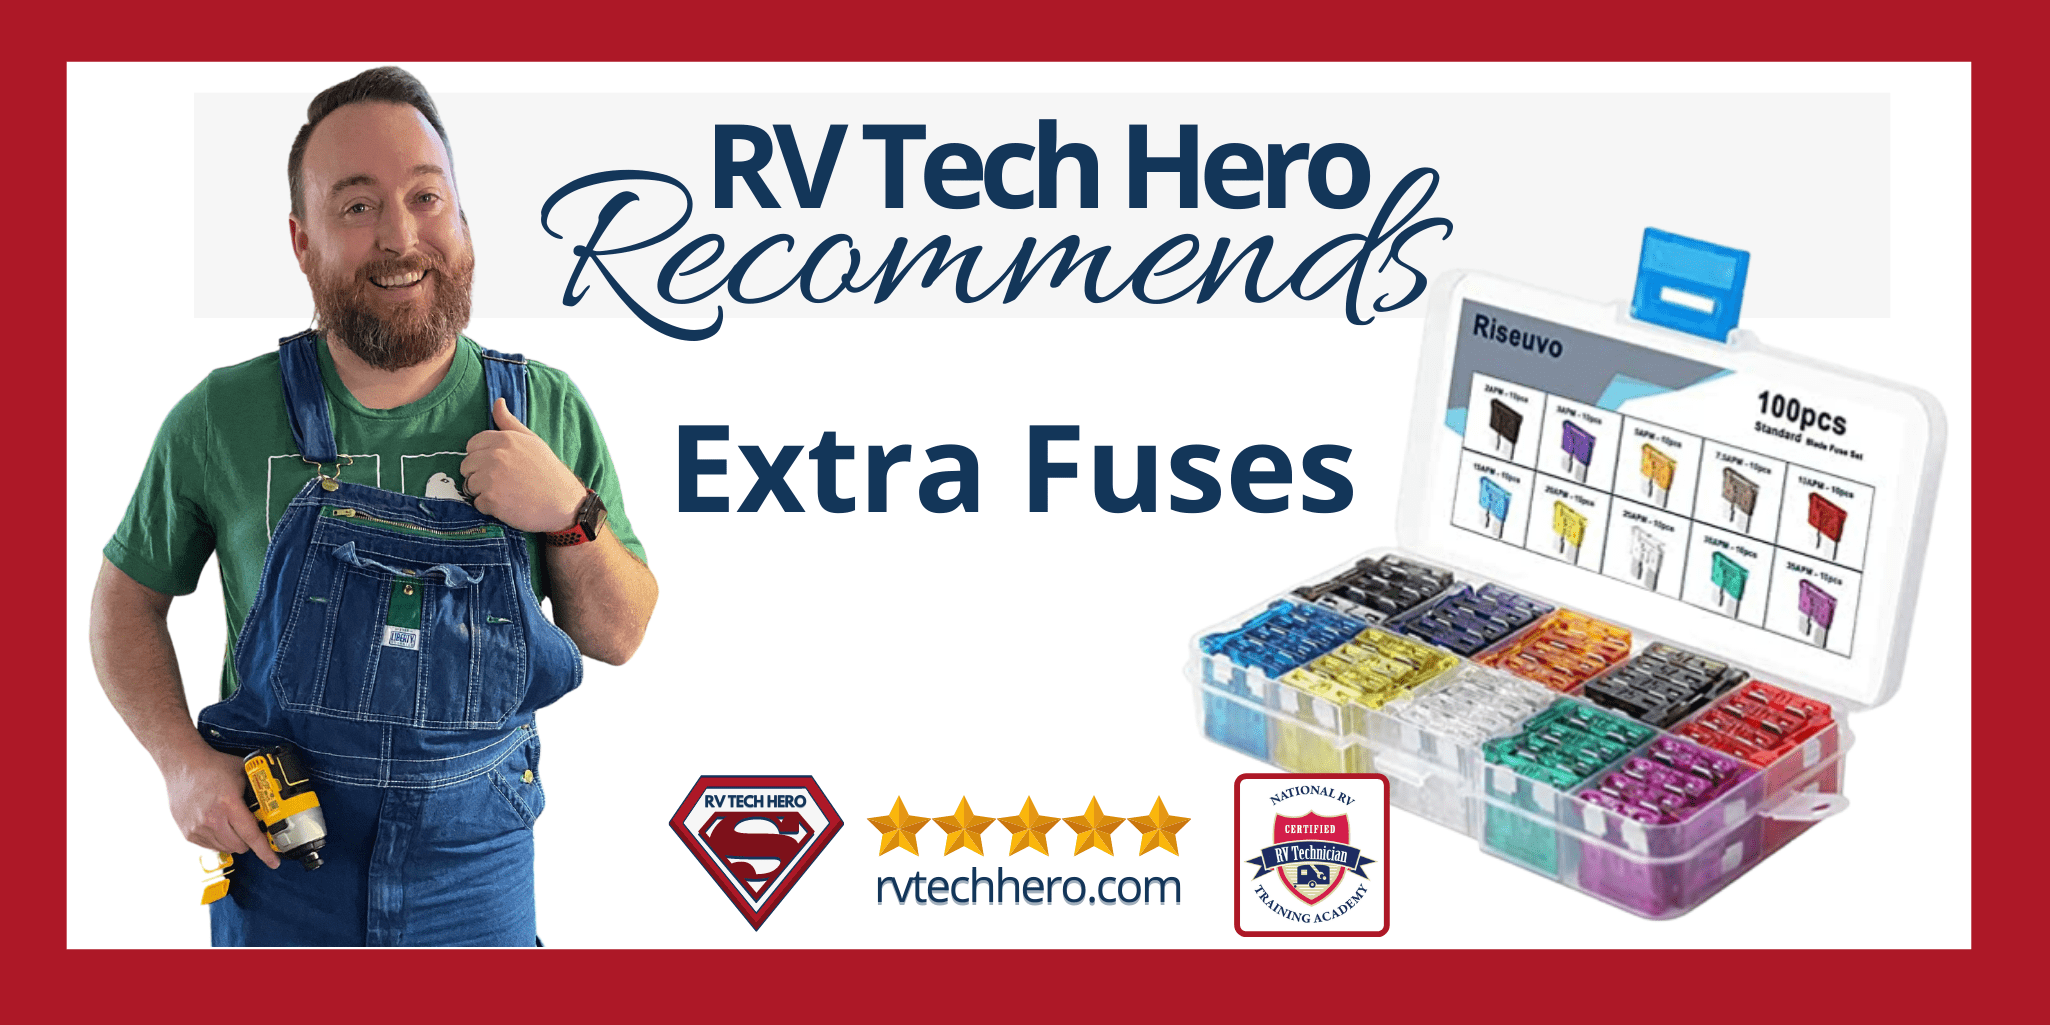 RV Tech Hero Recommends Extra Fuses